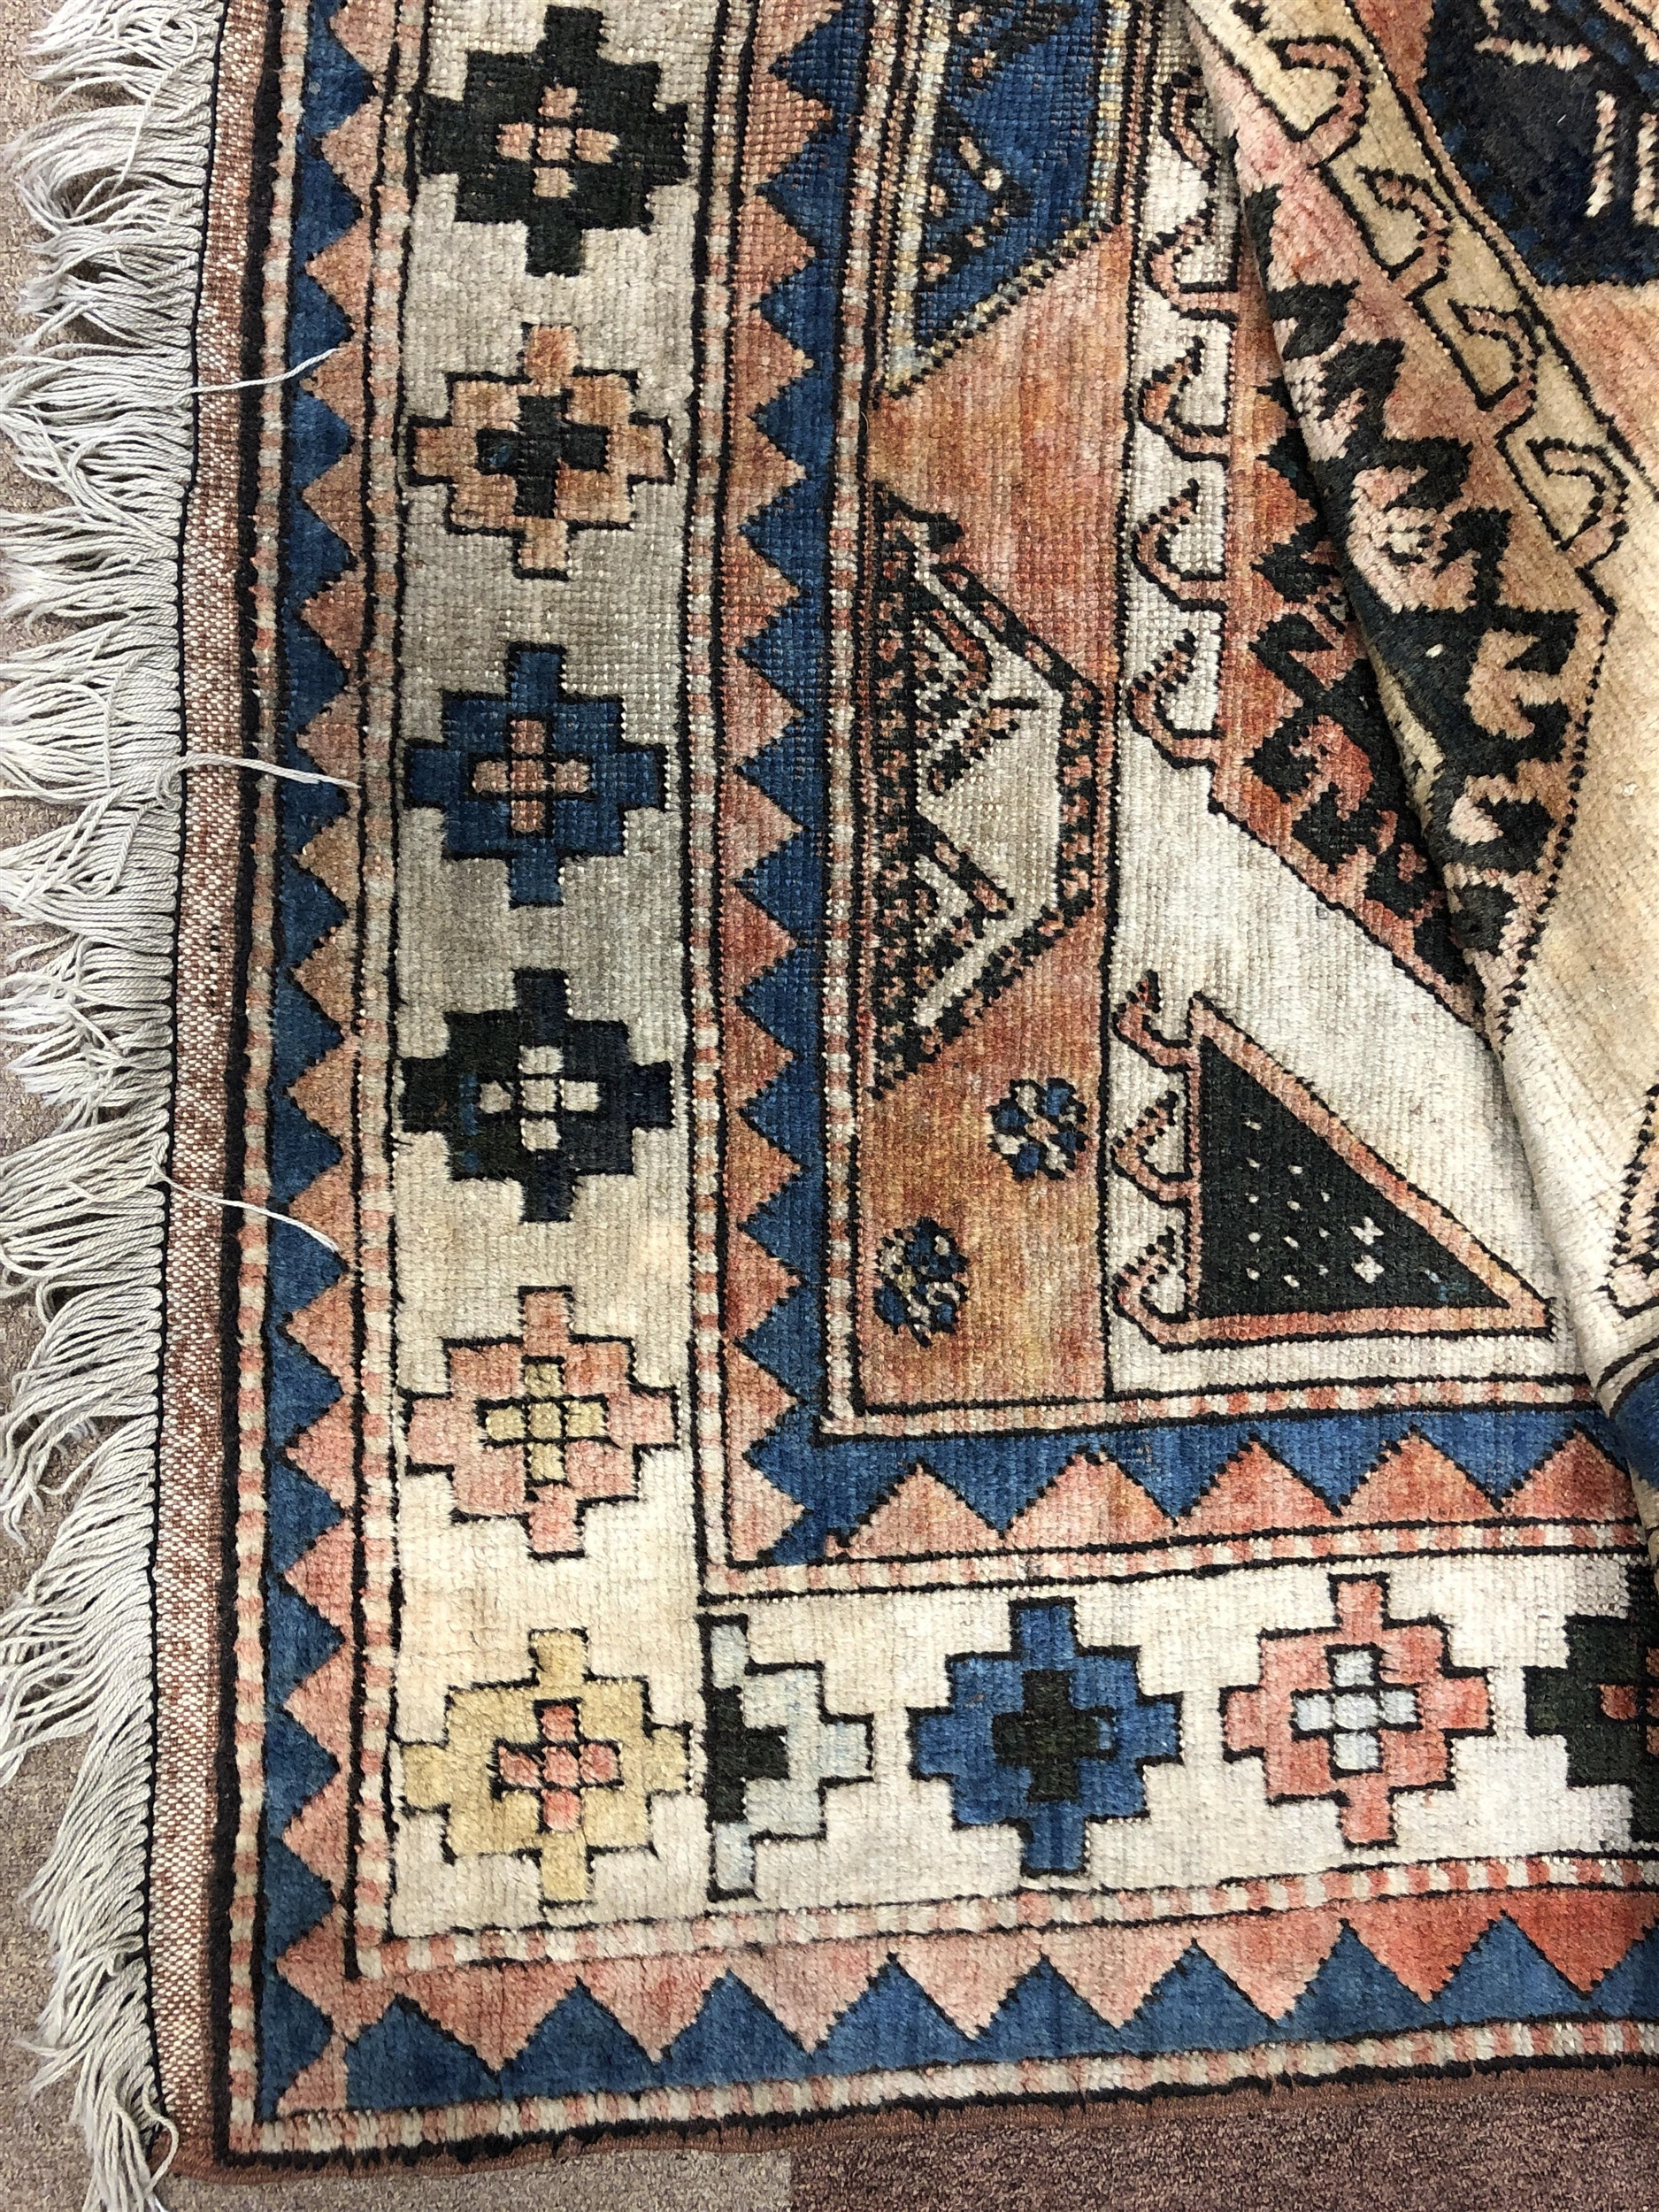 Lot 1075 - A MIDDLE EASTERN FRINGED CARPET